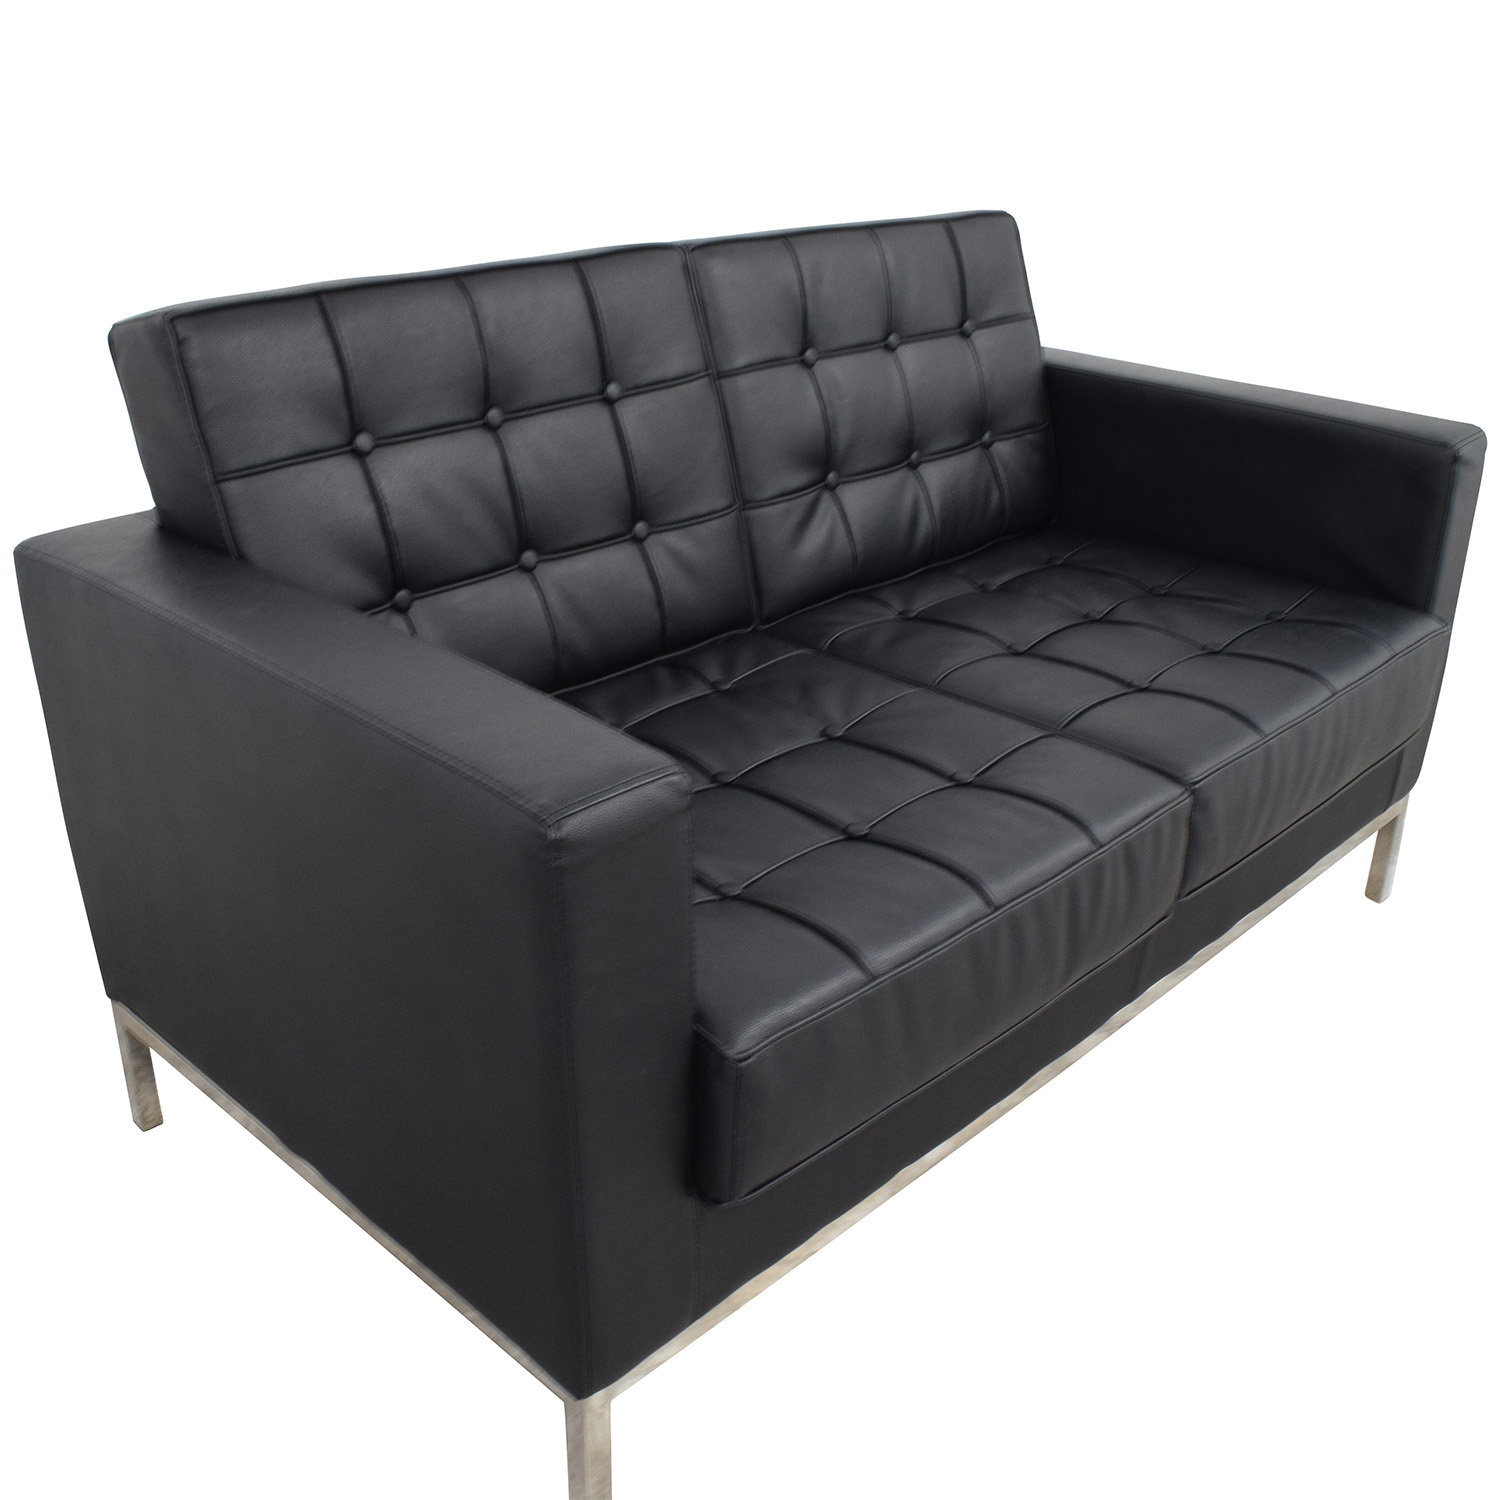 Lacey Series Lacey Series Contemporary Black Leather Loveseat